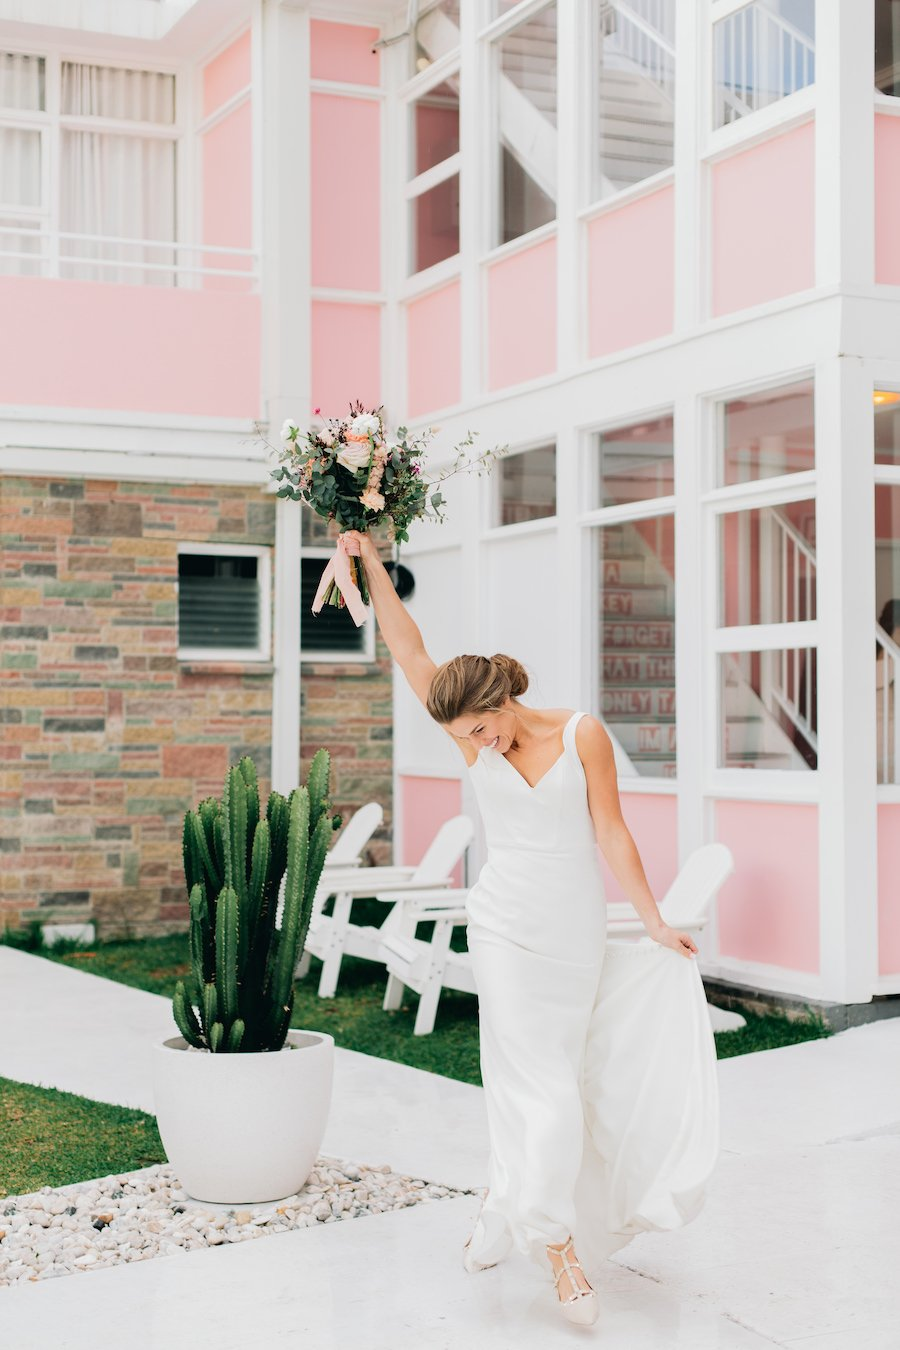 Bride dancing at The Pink Hotel Coolangatta accommodation